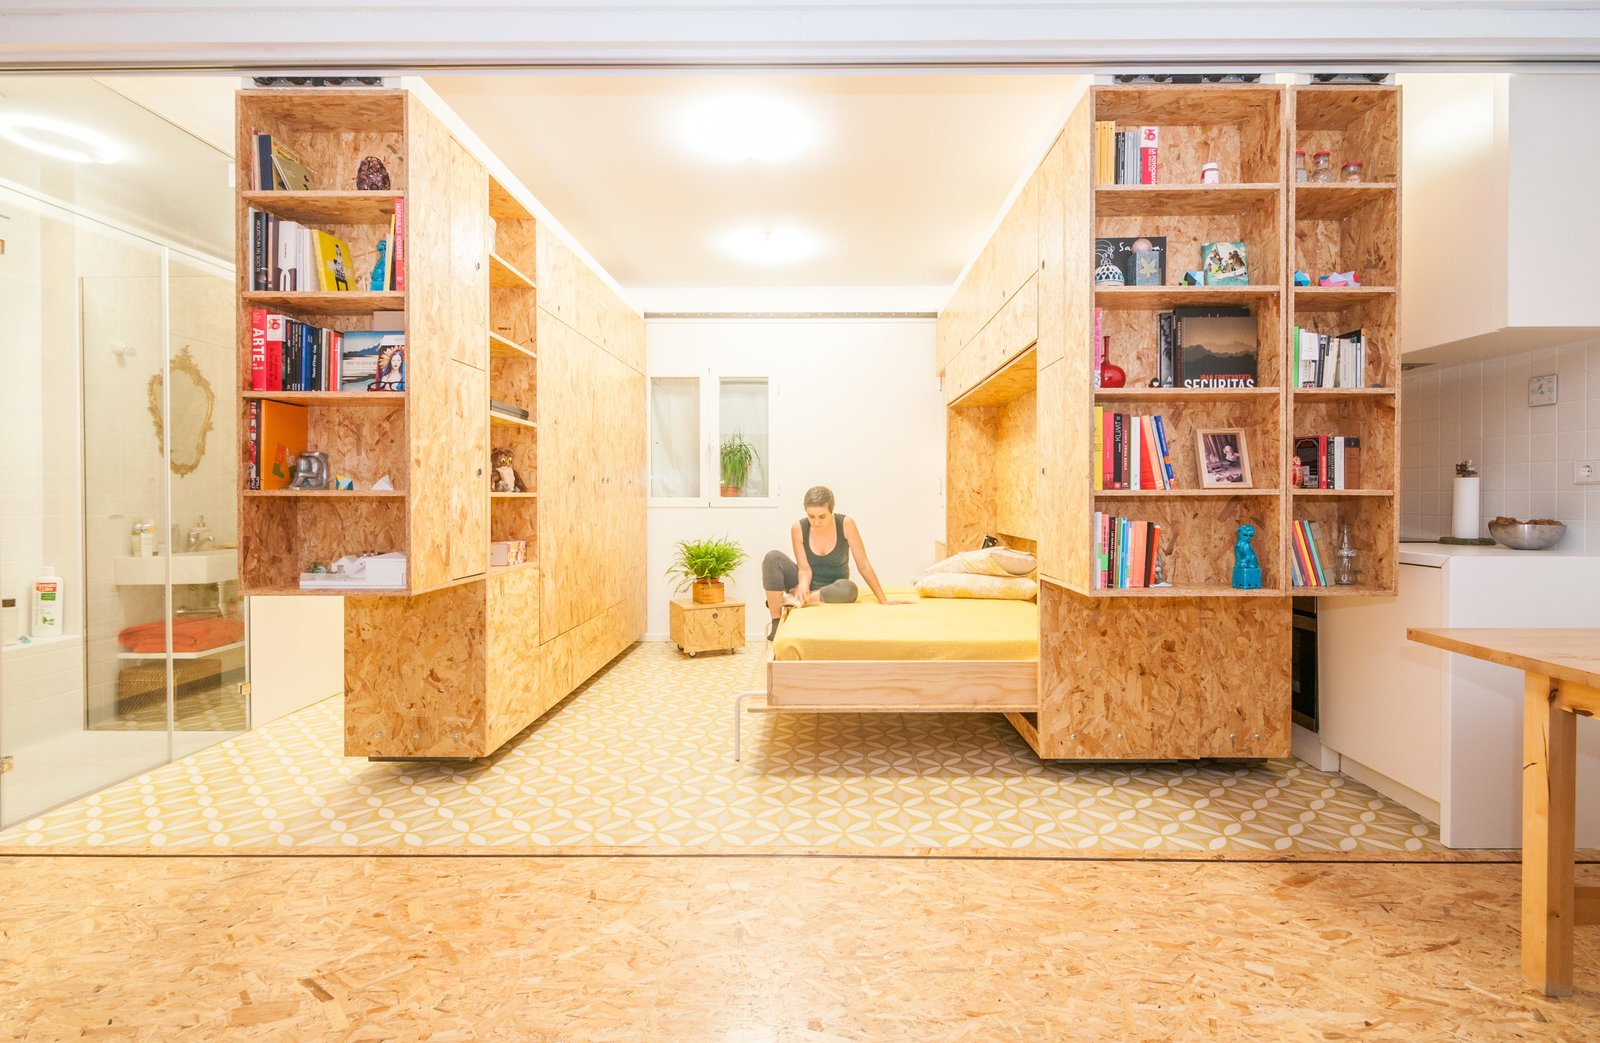 One of the shelving units includes a Murphy bed, making for a comfortable sleeping space. Tagged: Bedroom, Bed, Shelves, and Storage.  Storage by Dwell from Sliding Shelves Transform This Tiny Home Into Countless Configurations